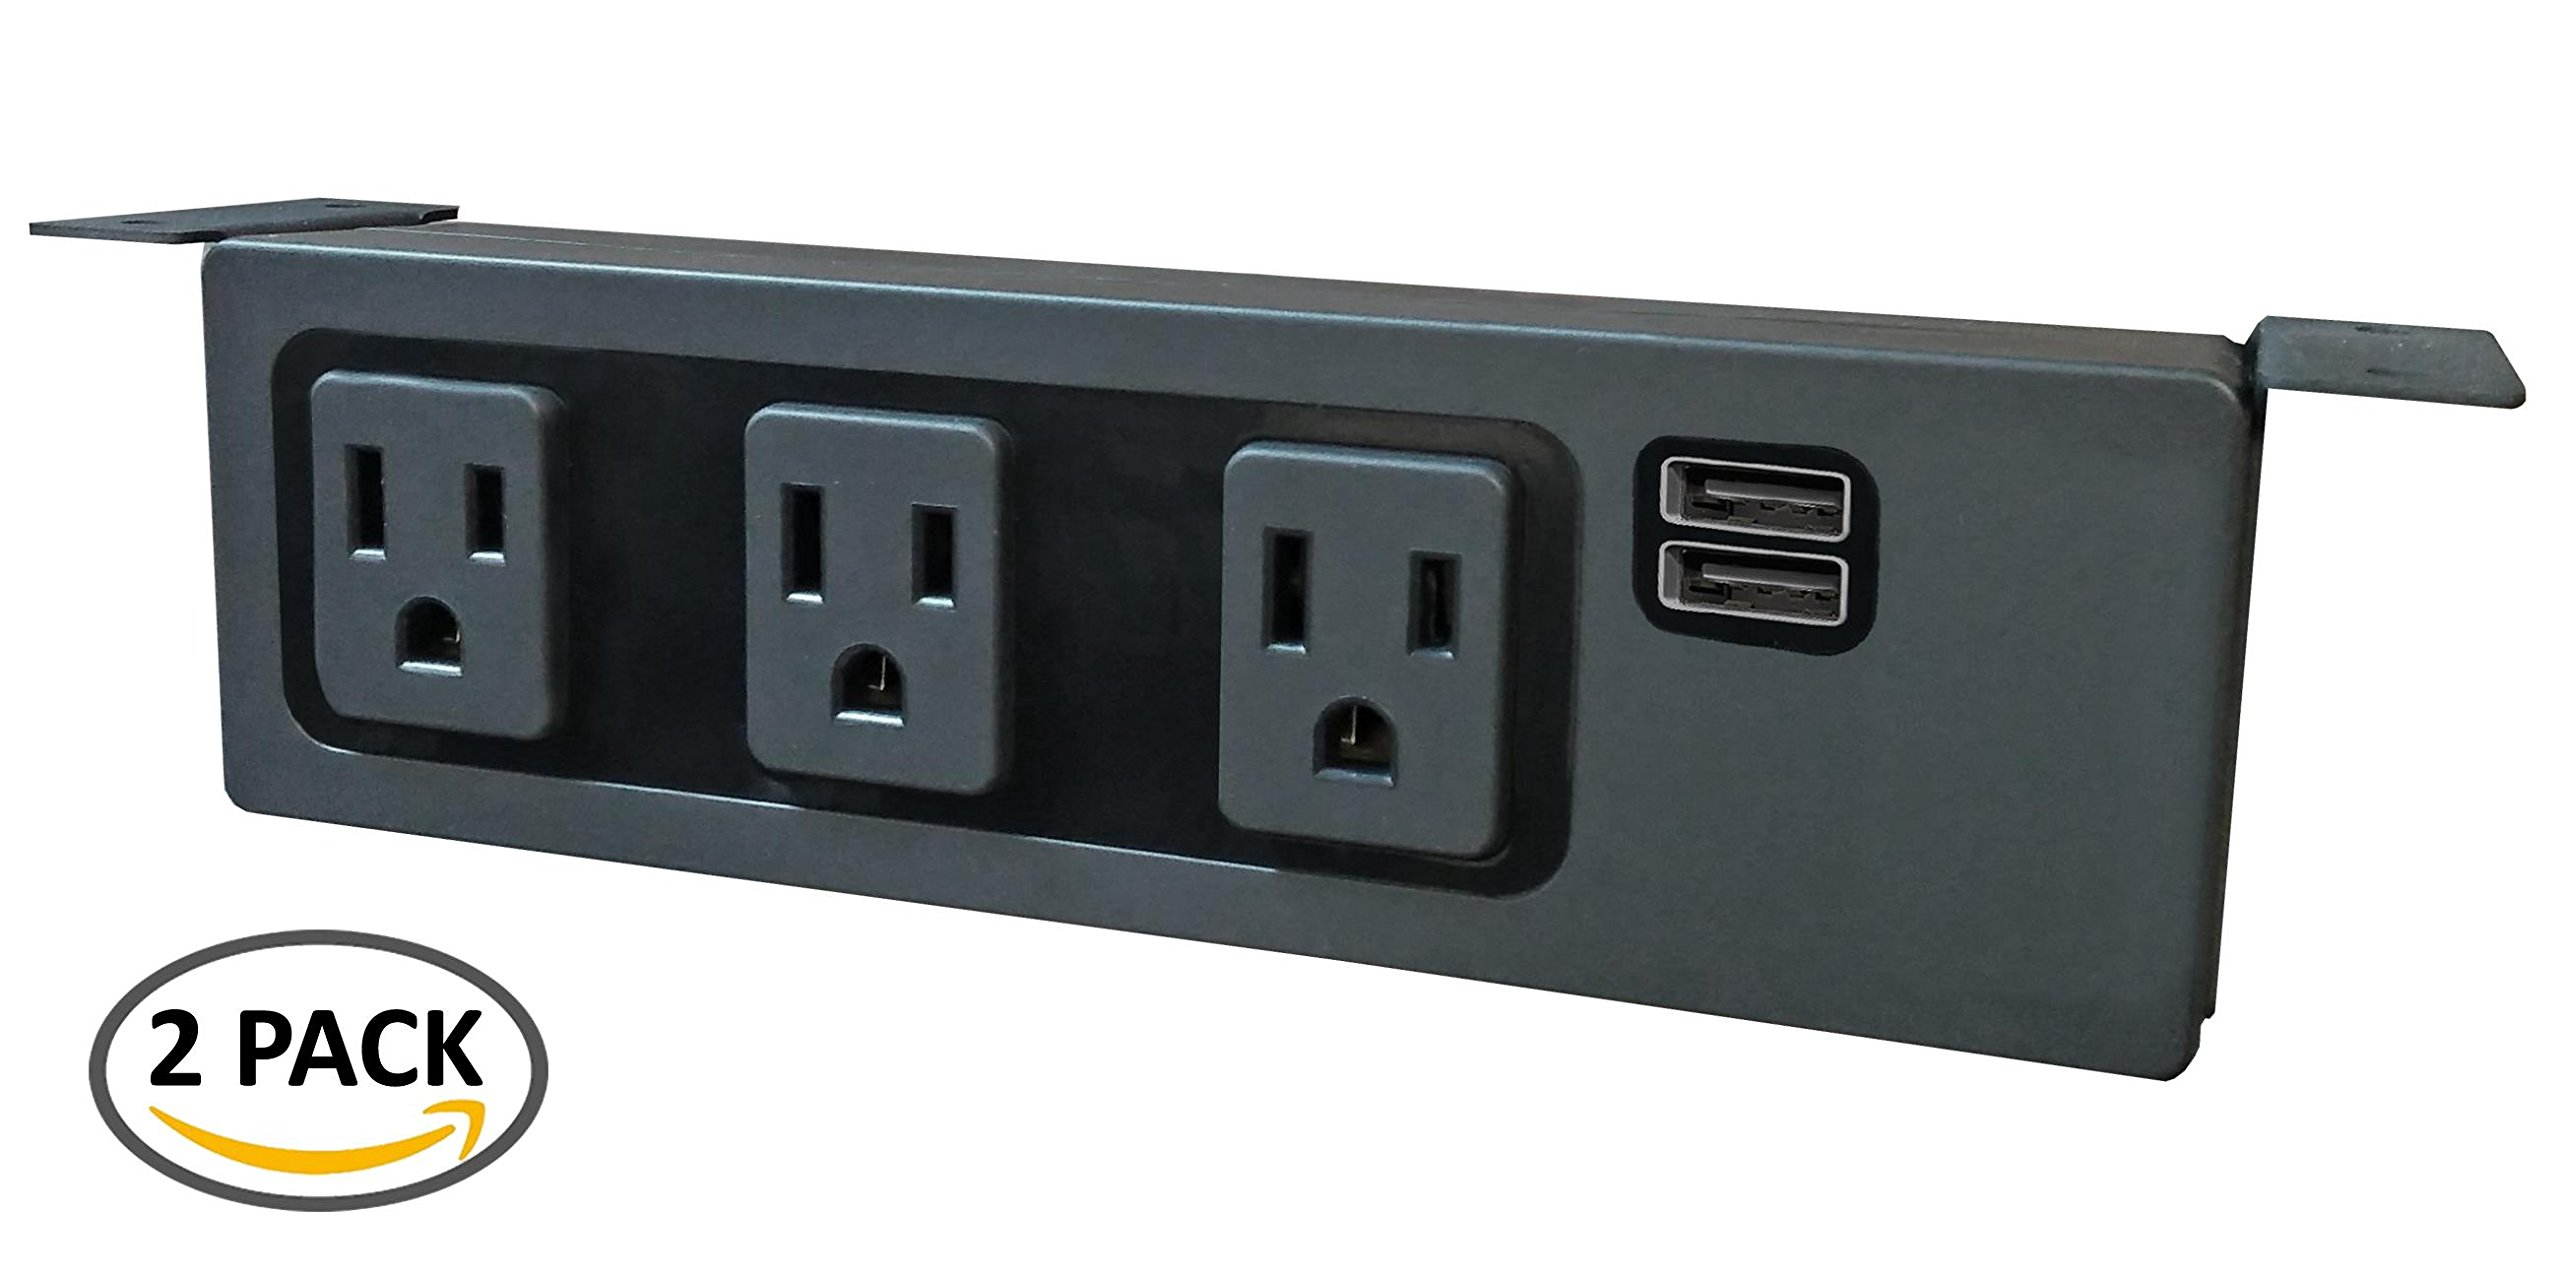 Under The Desk/Table Power Center - 3 Outlets & 2 USB 3.1 Amp Ports (Pack of 2) (Black)